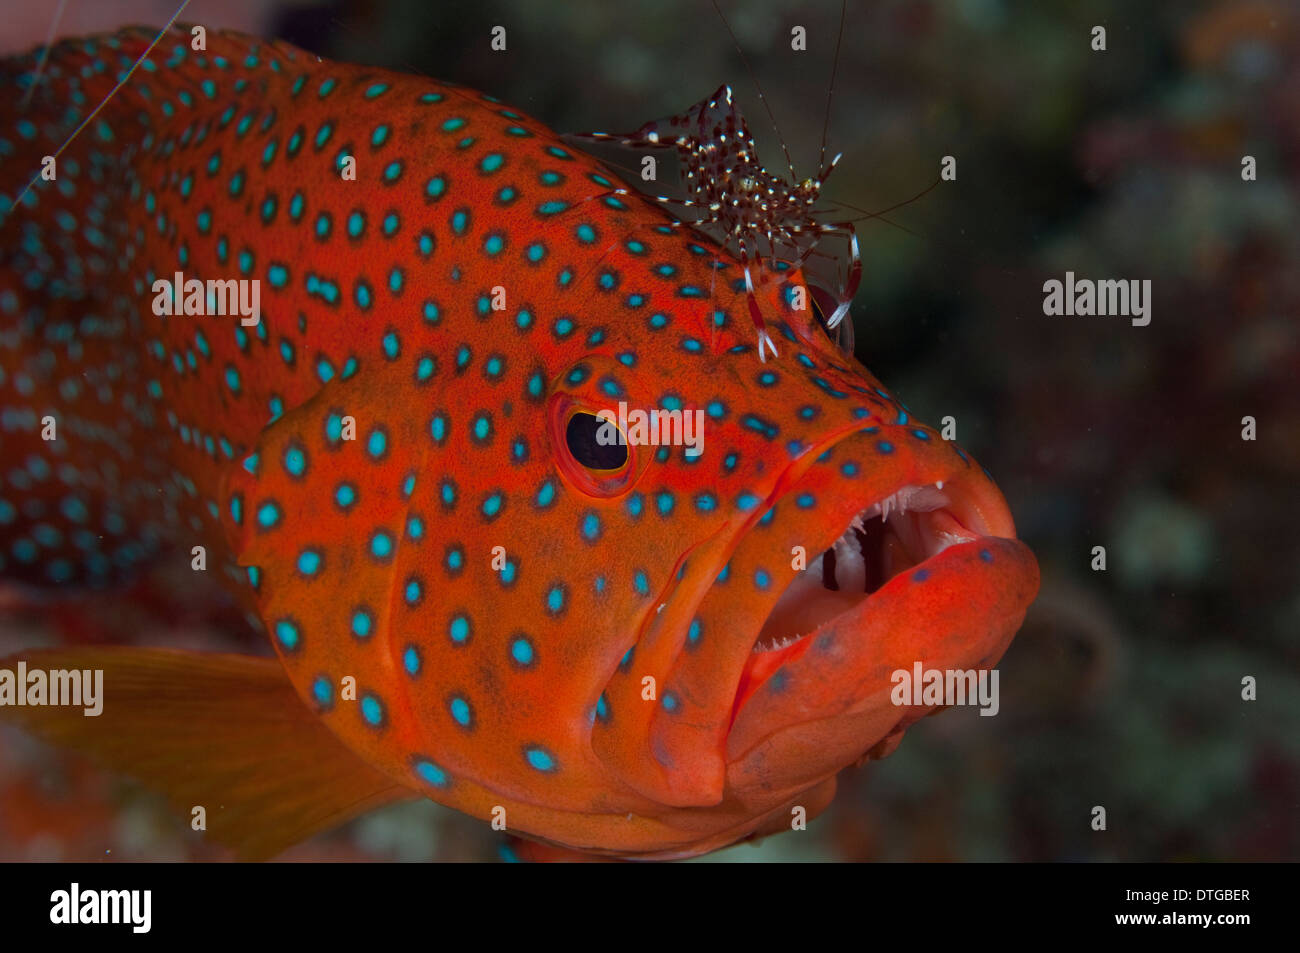 Red Spots Fish Stock Photos & Red Spots Fish Stock Images - Alamy